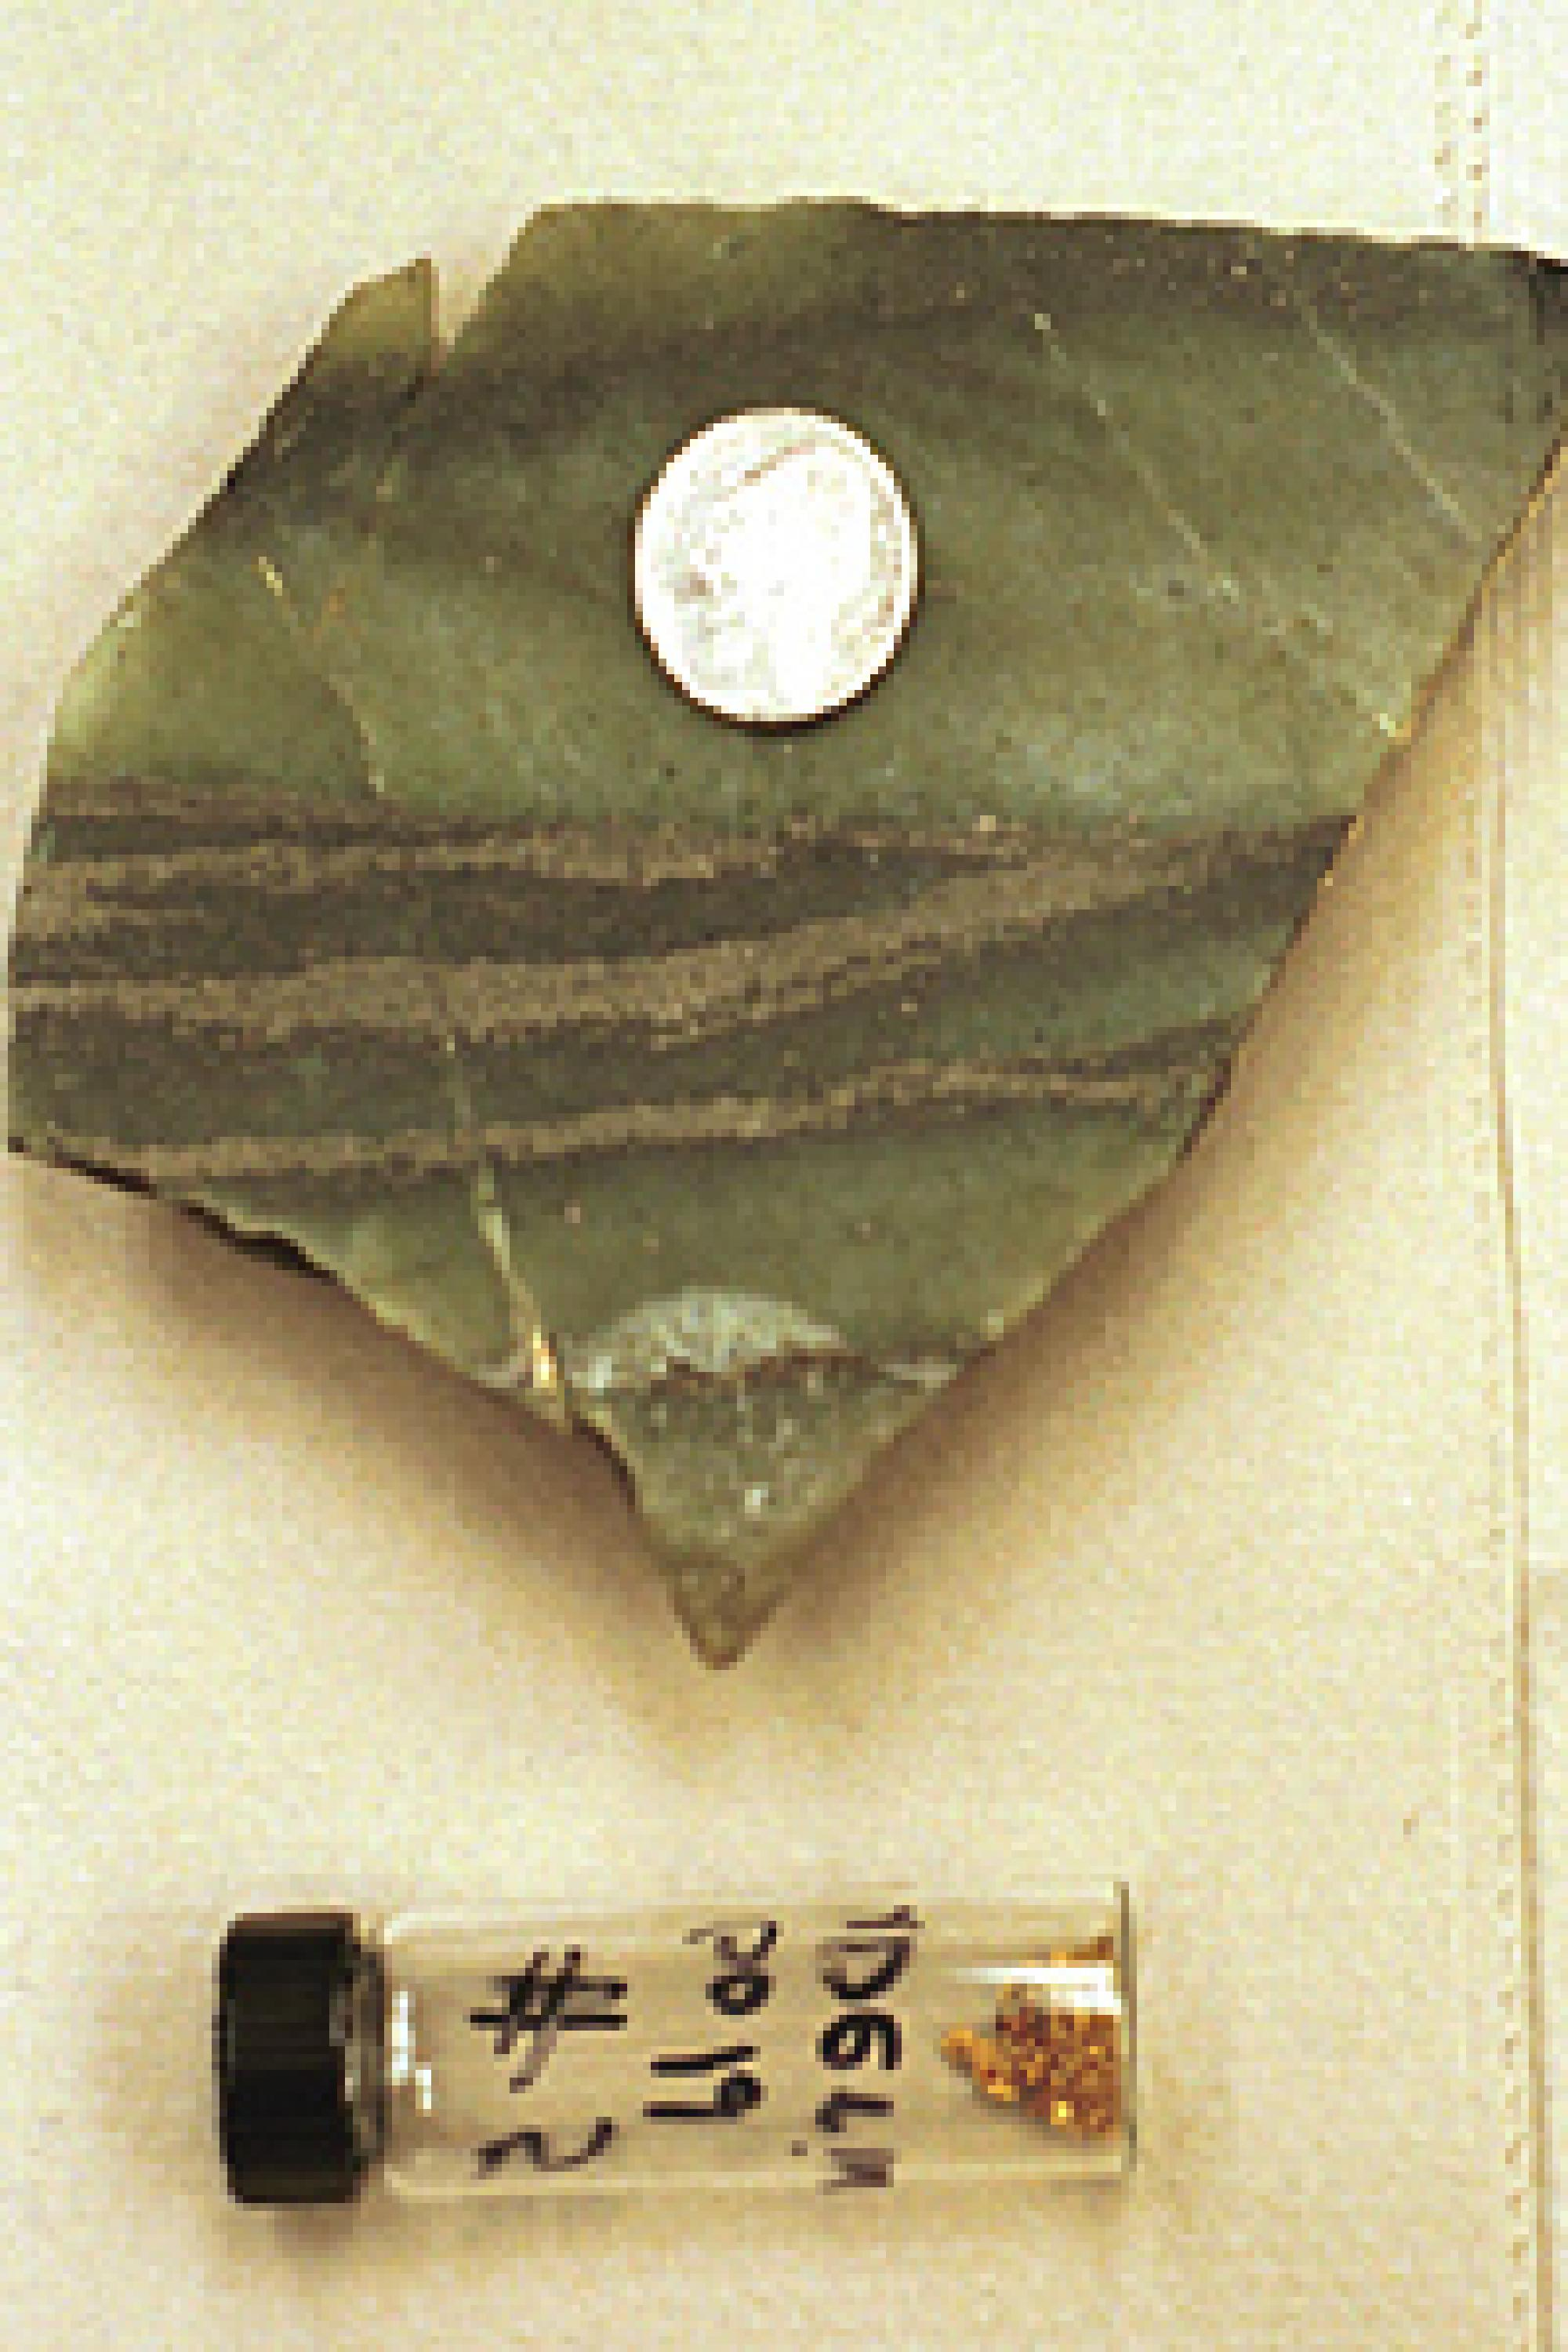 Crossbedded gold layers run through the green metamorphosed conglomerate rock shown with a nickel for scale in the photo above,  along with a sample of gold.